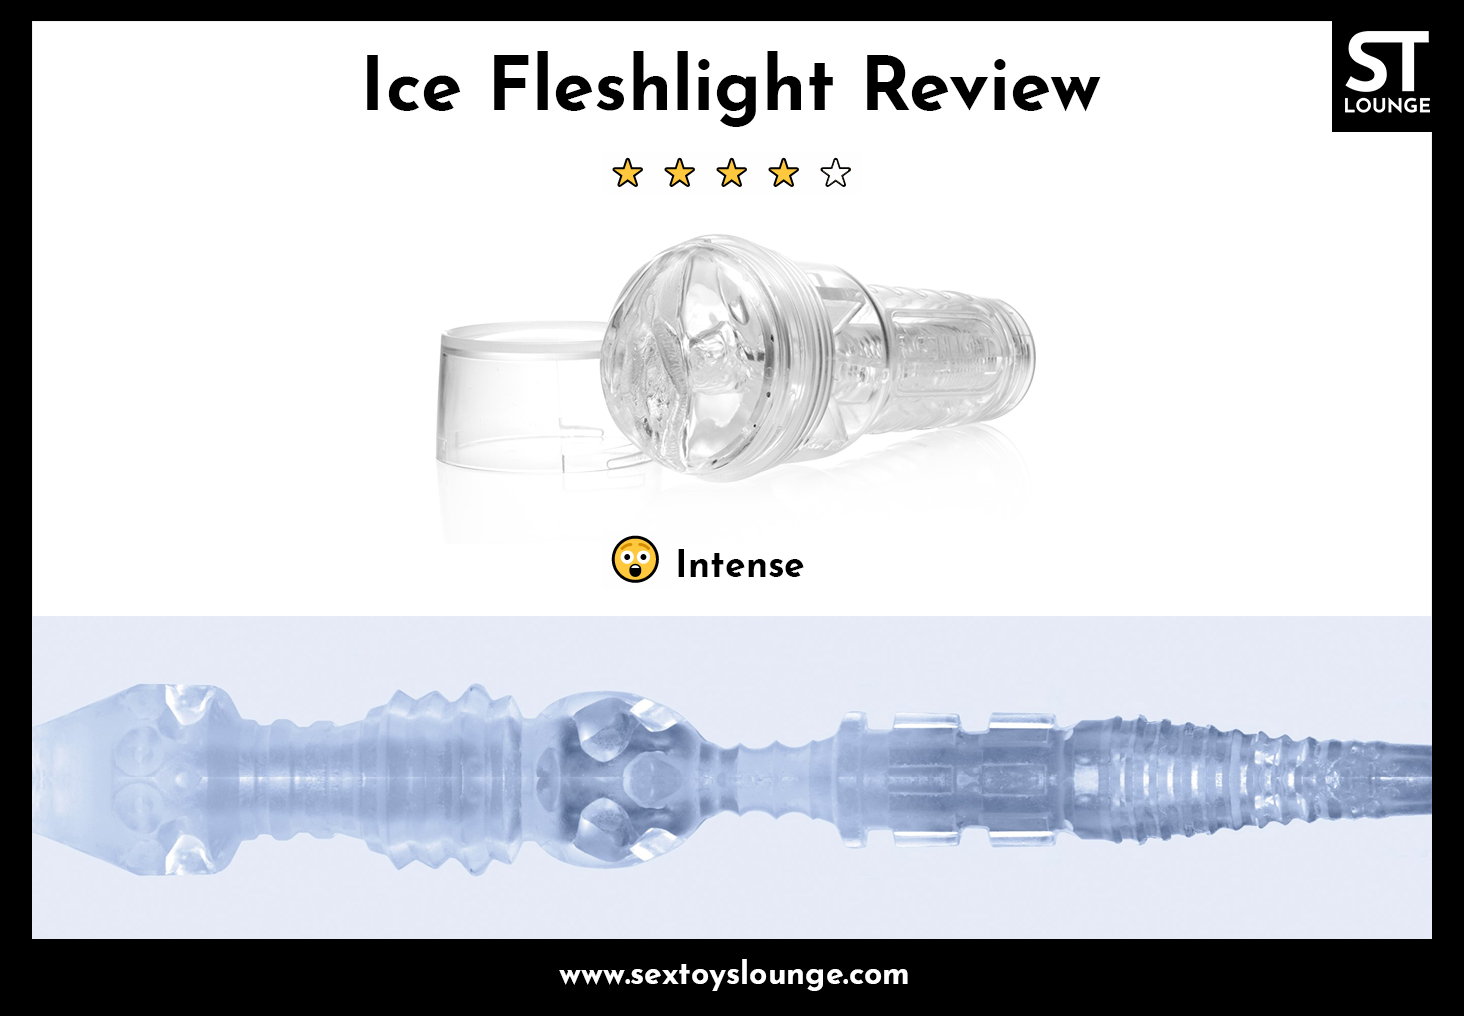 fleshlight-ICE-review